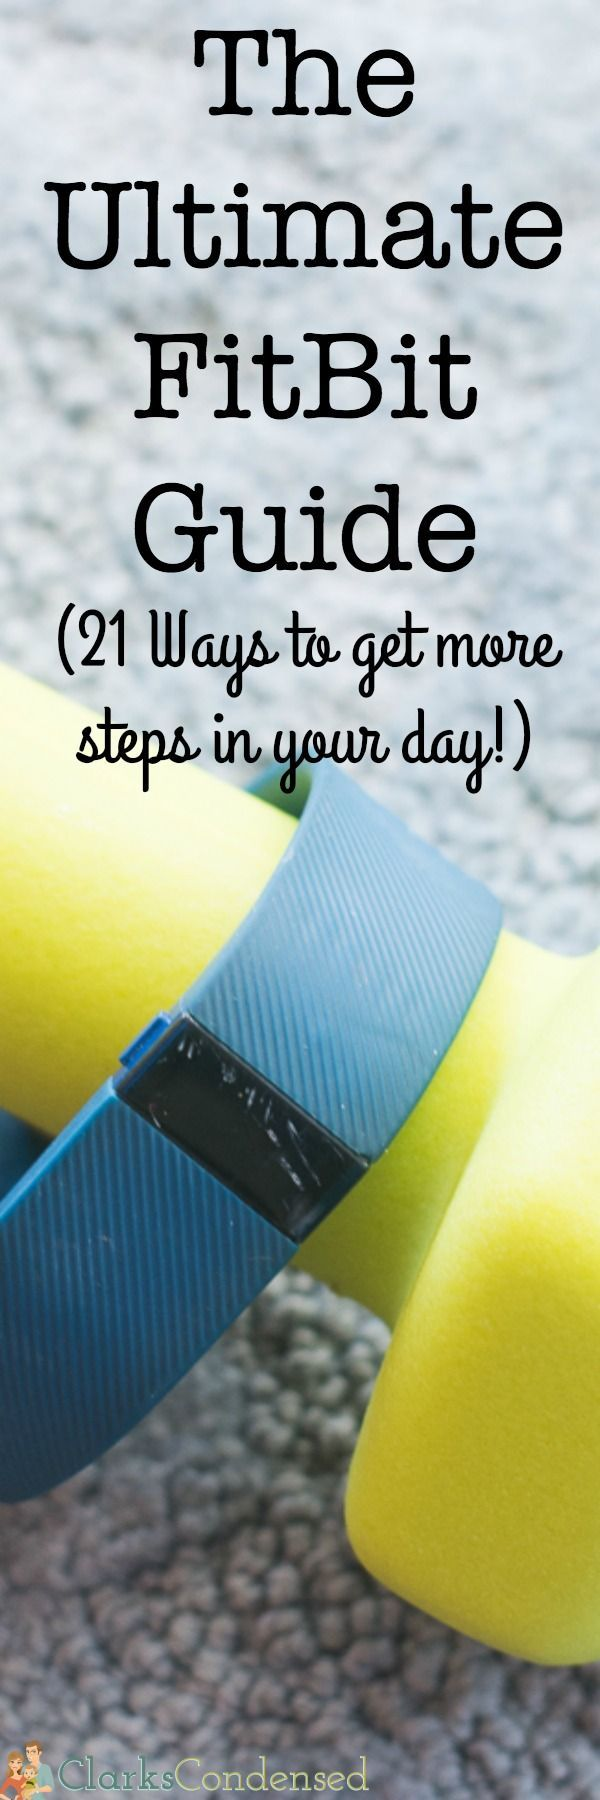 New to the FitBit world? This post will teach you tips and tricks for using a FitBit, as well as 21 ways to get more activity steps in your days and smash your goals.